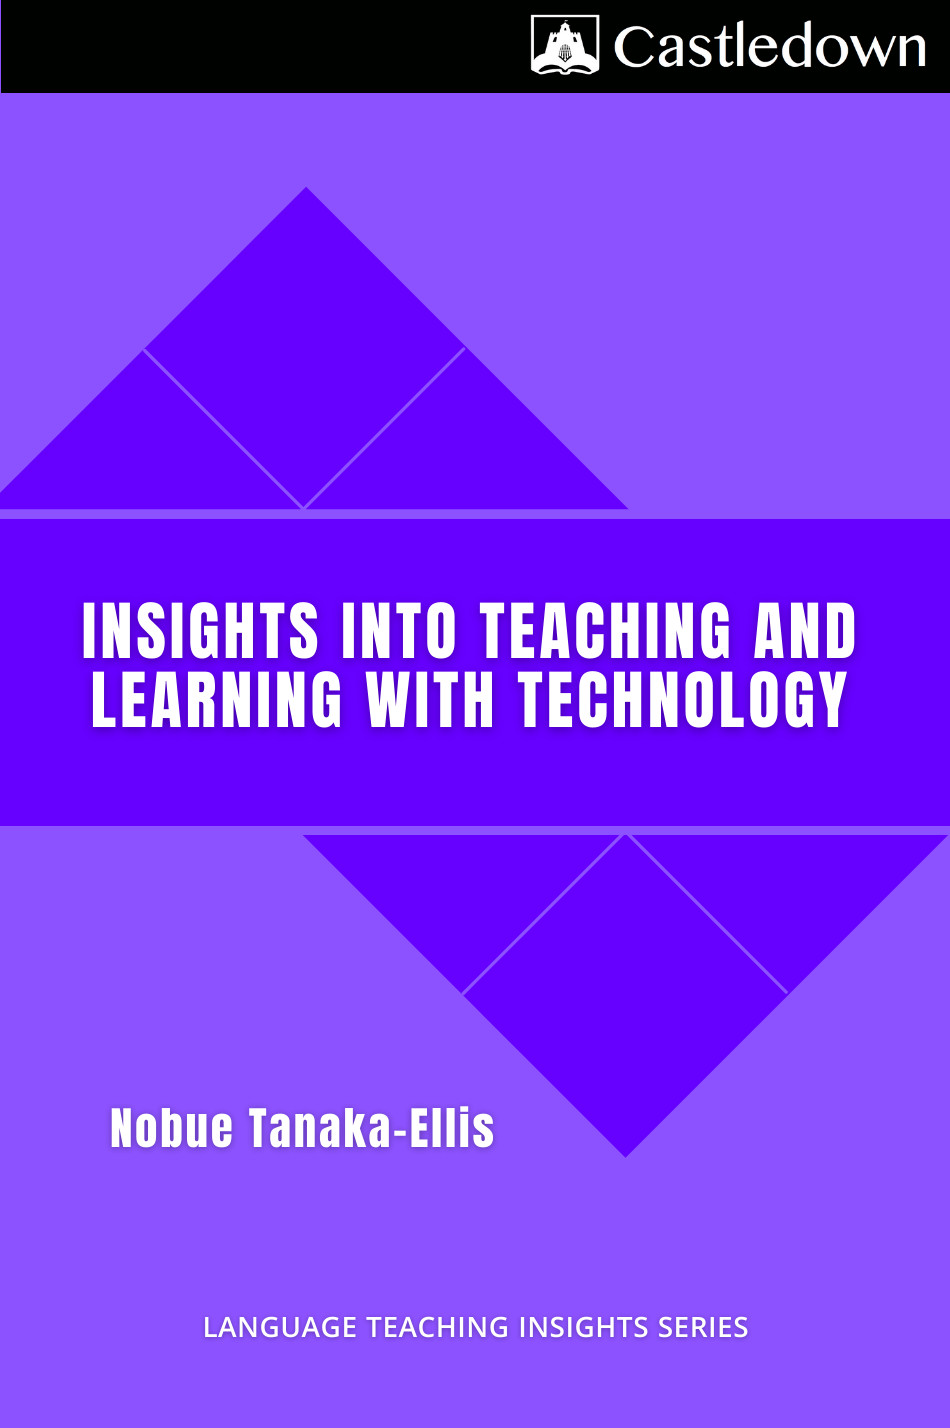 Insights into teaching and learning with technology